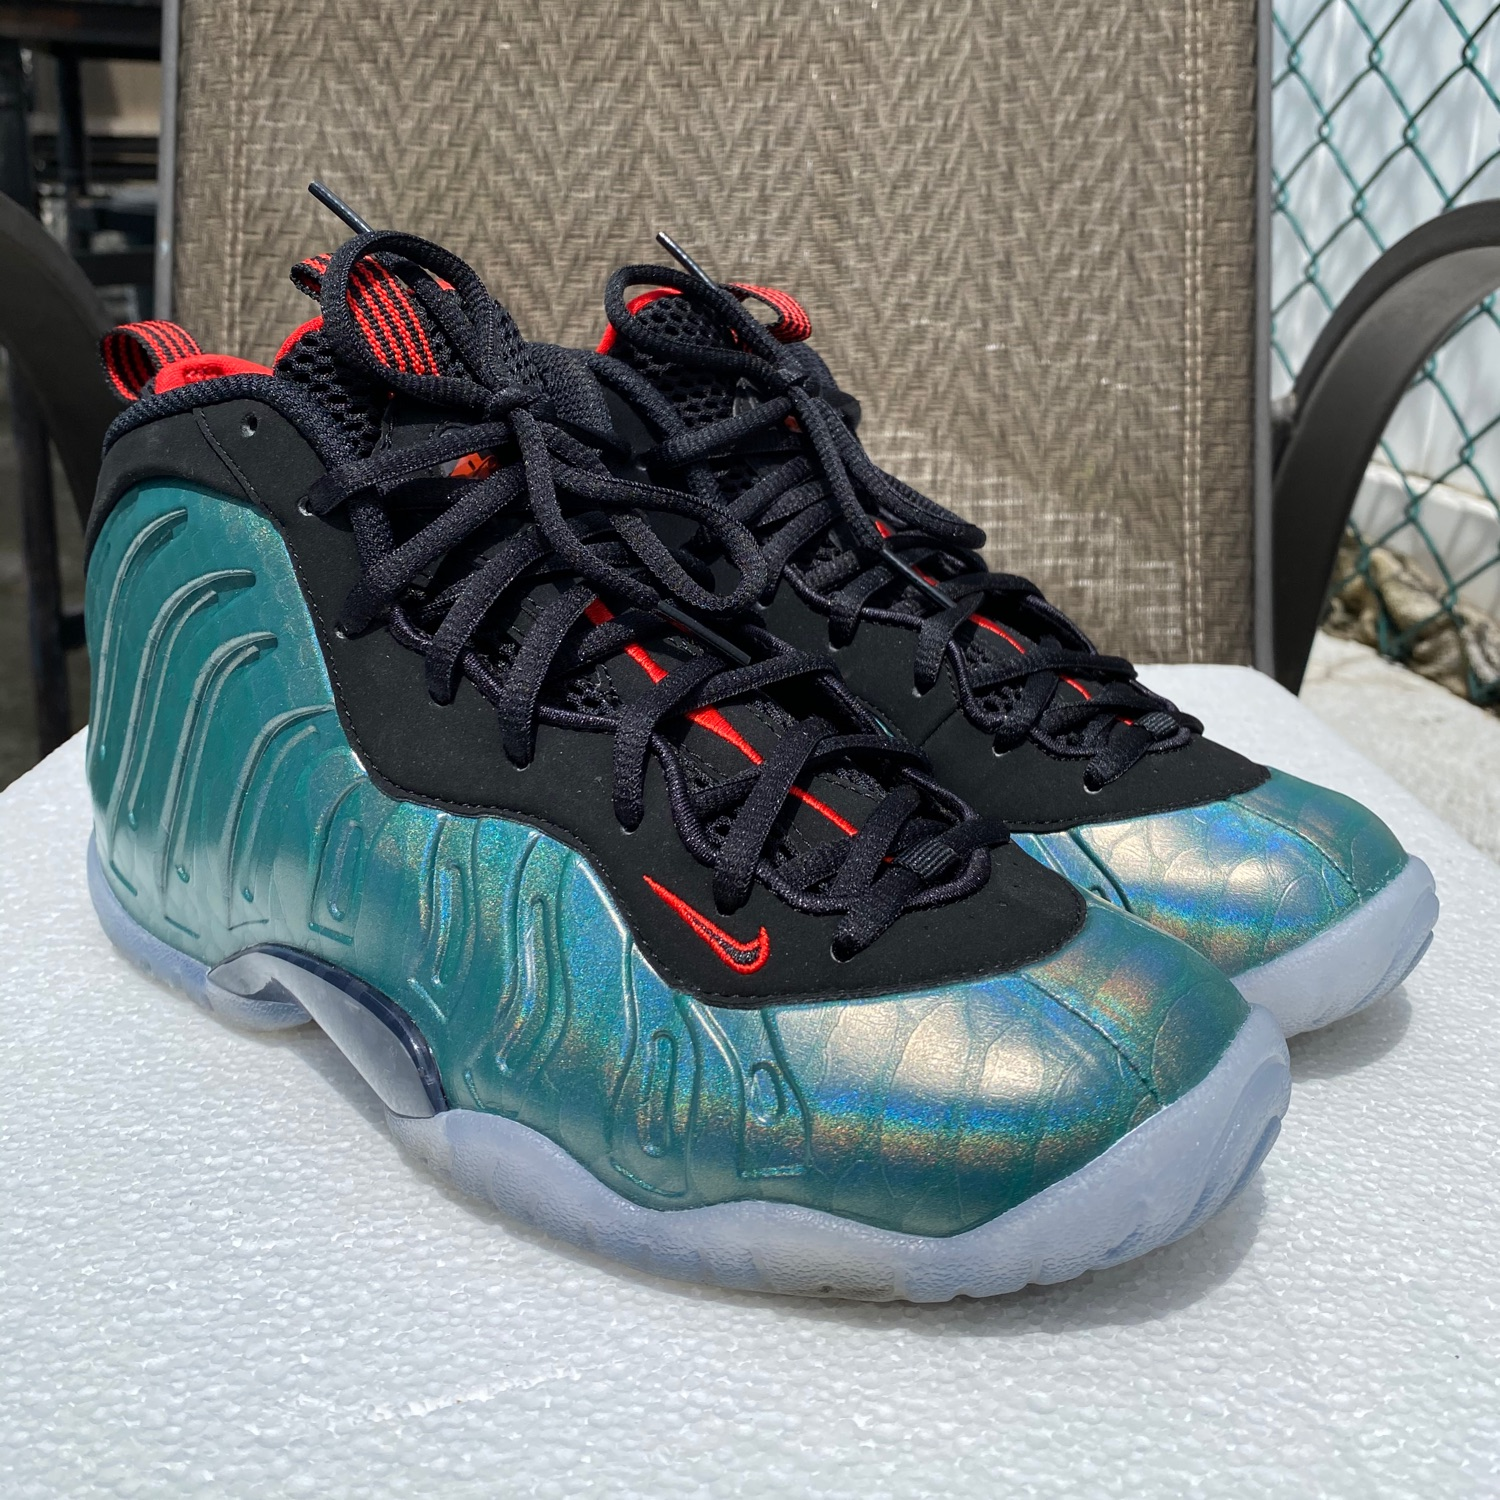 NBA 2K20 Shoe CreatorNike Foamposite One Metallic Red ...